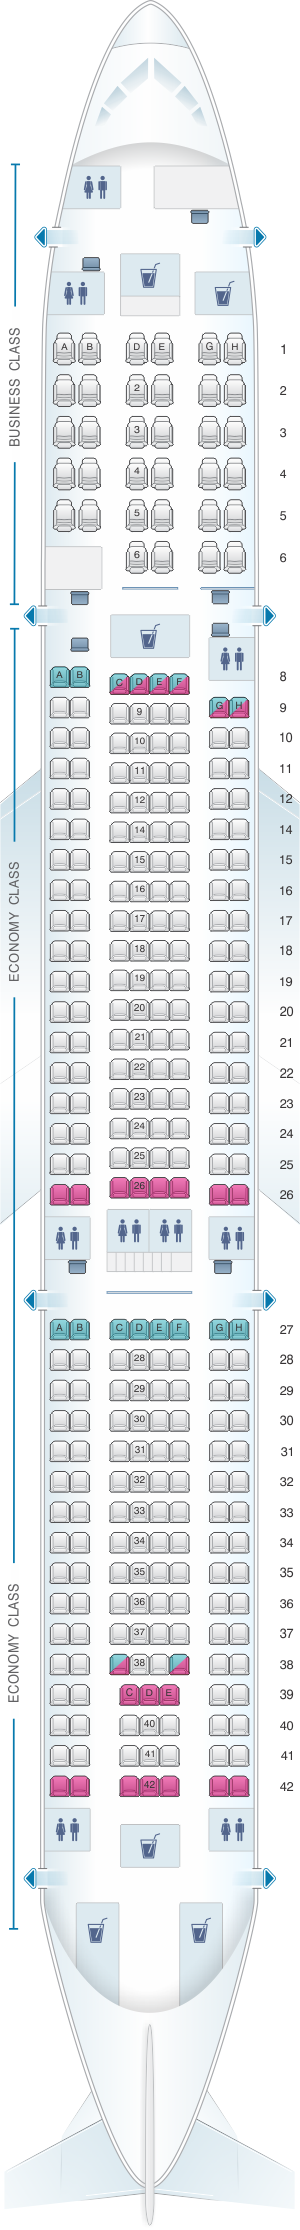 Seat map for Air Mauritius Airbus A340 300E